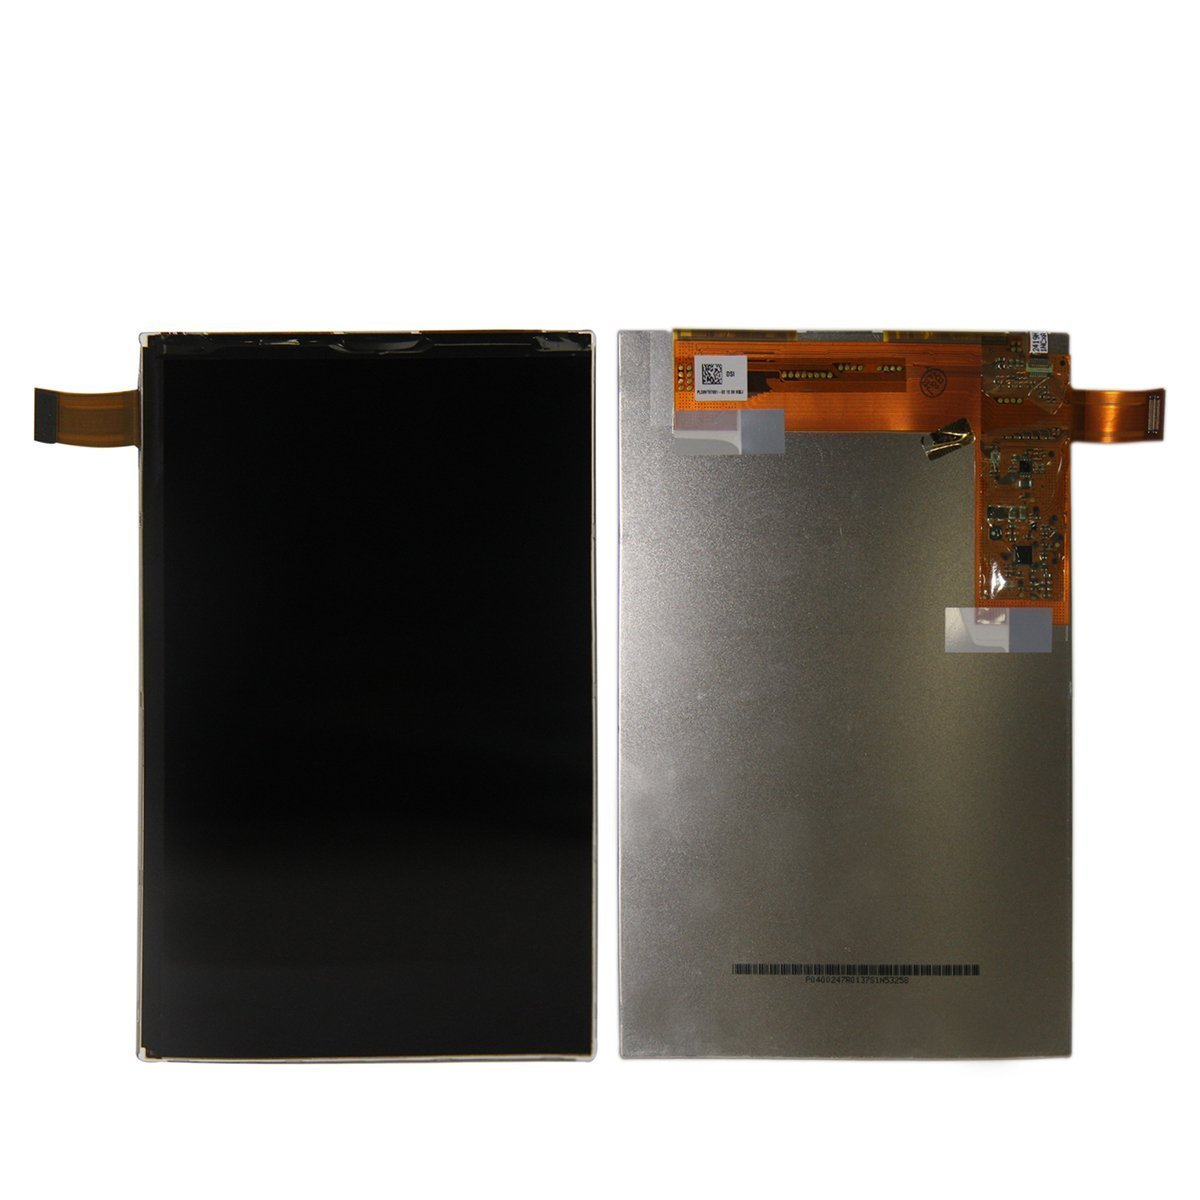 "OEM LCD Display Screen 7"" Inches For Asus MeMO Pad HD 7 ME173 ME173X Tablet Replacement Part"